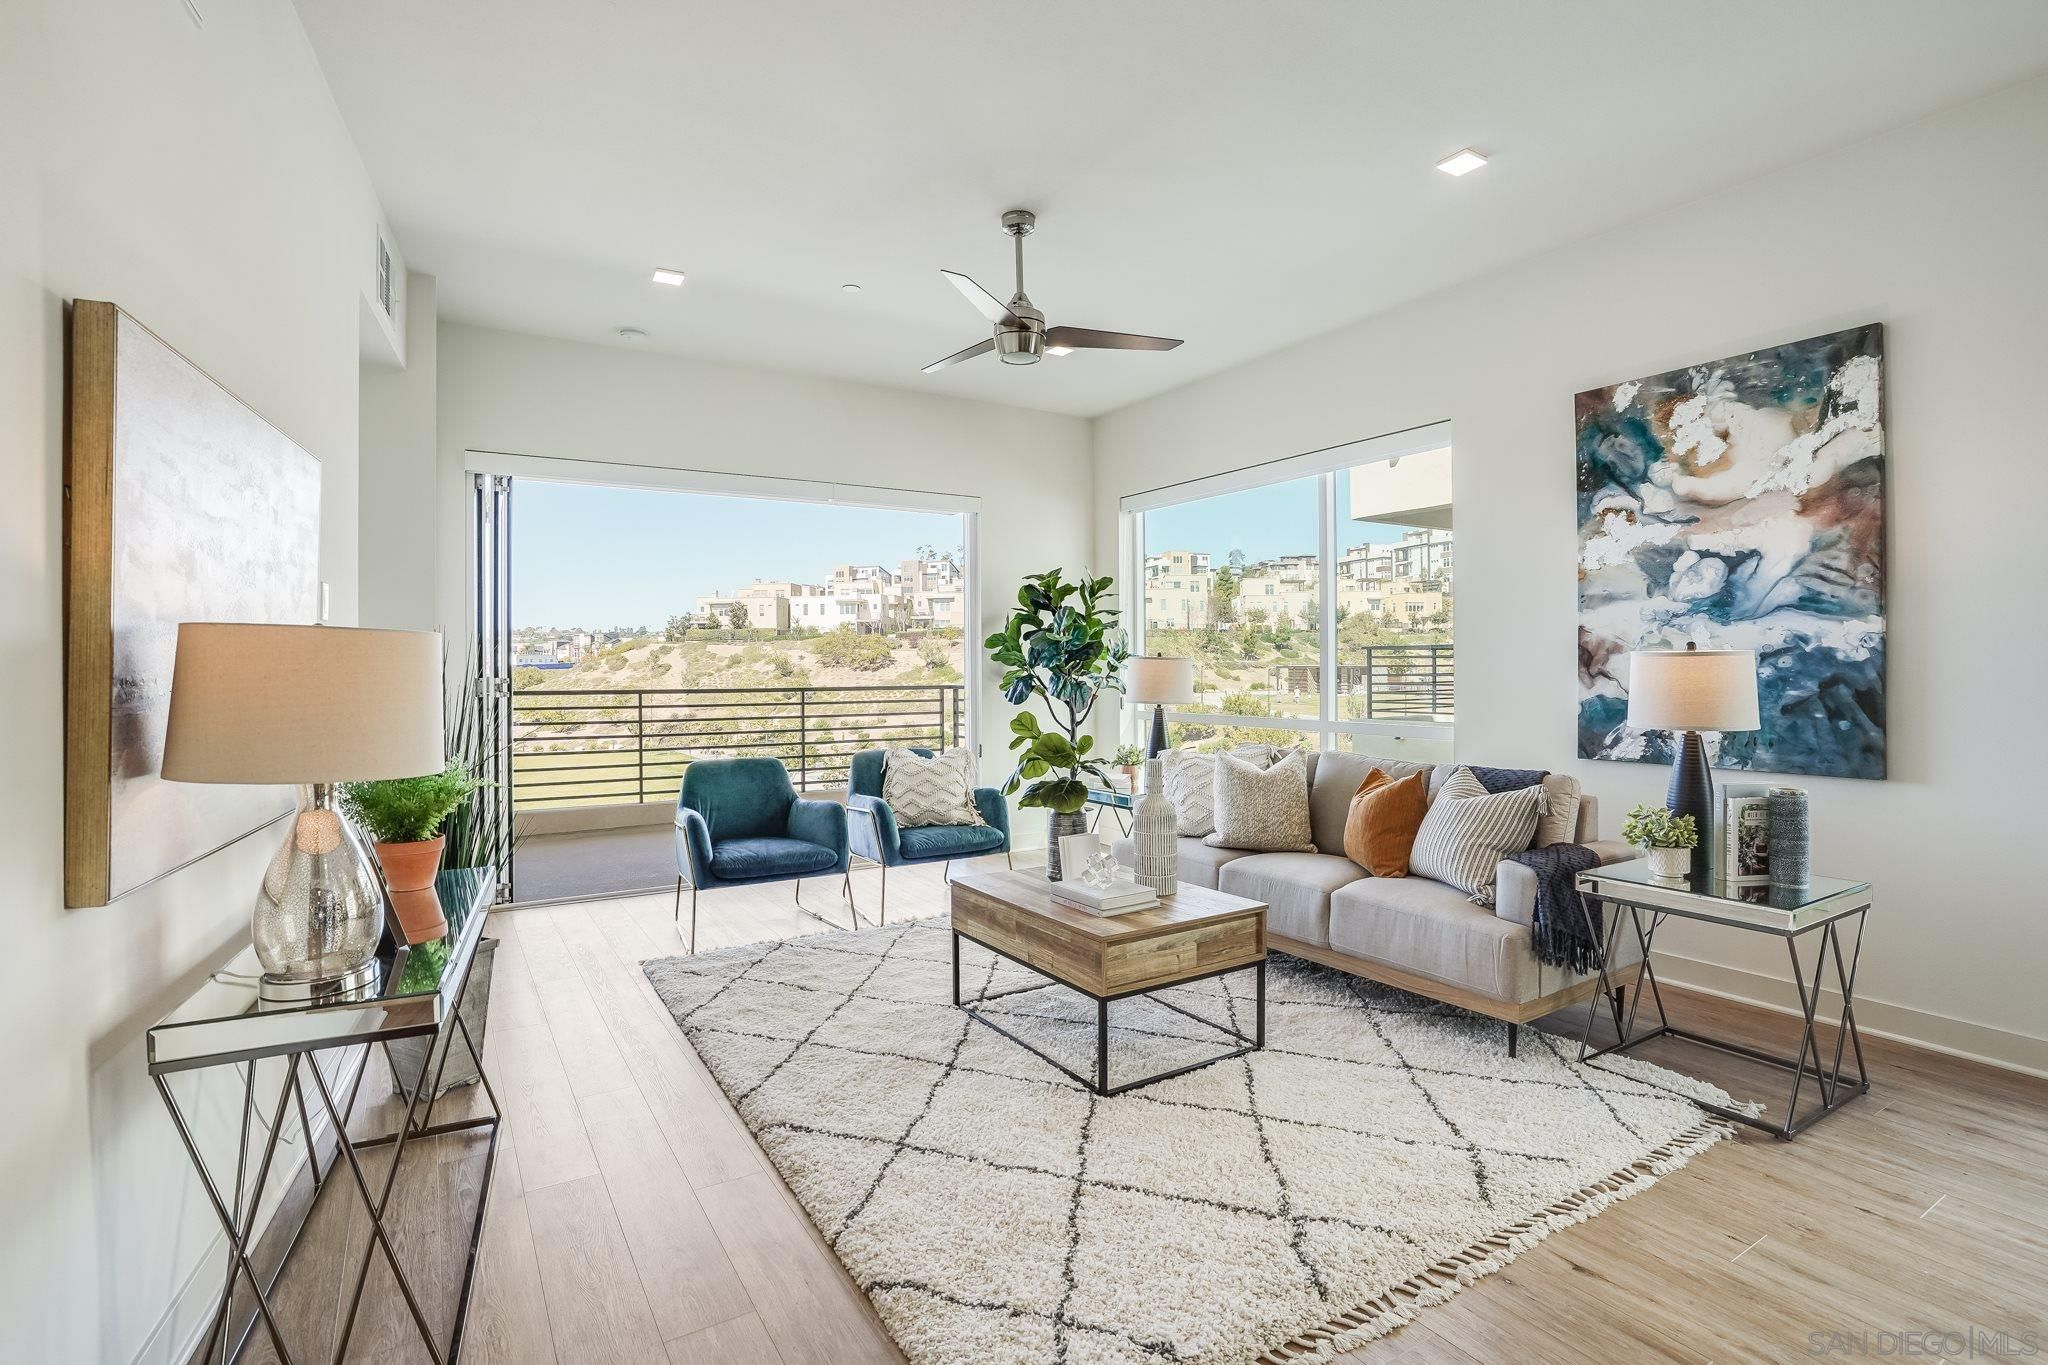 Main Photo: MISSION VALLEY Condo for sale : 3 bedrooms : 2450 Community Ln #14 in San Diego